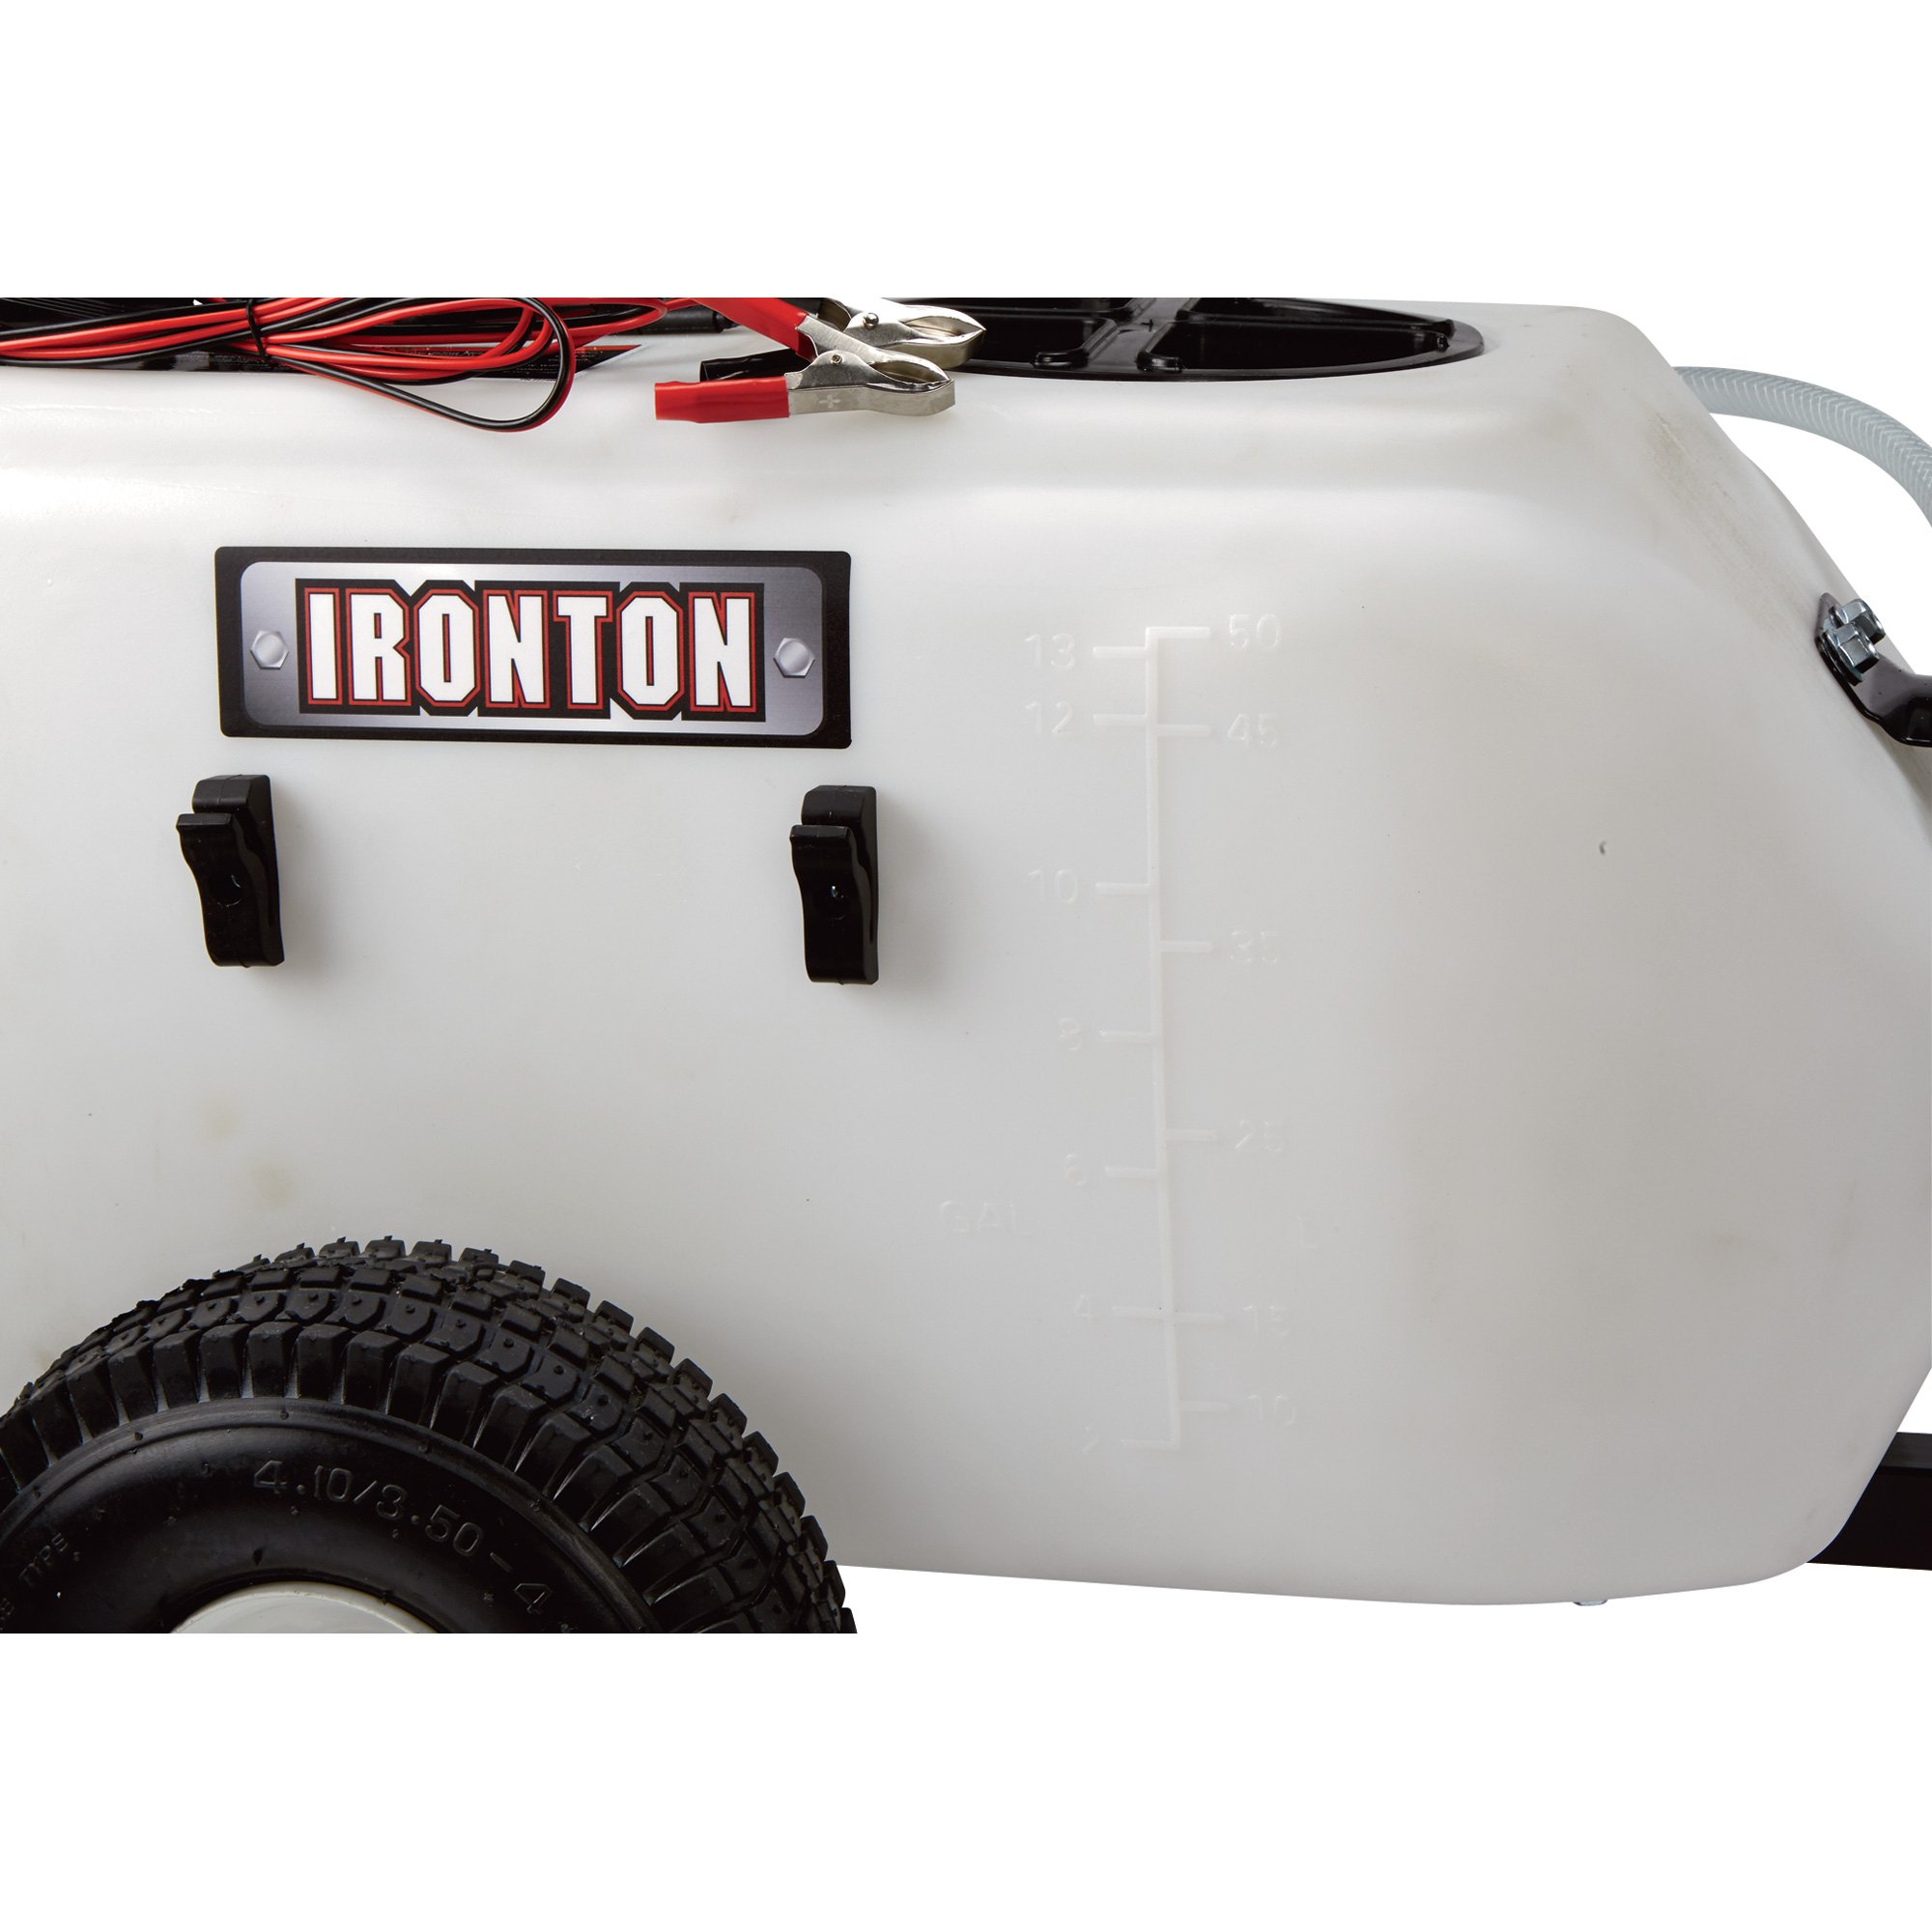 Ironton Tow-Behind Broadcast and Spot Sprayer - 13 Gallon, 1 GPM, 12 Volt DC by Ironton